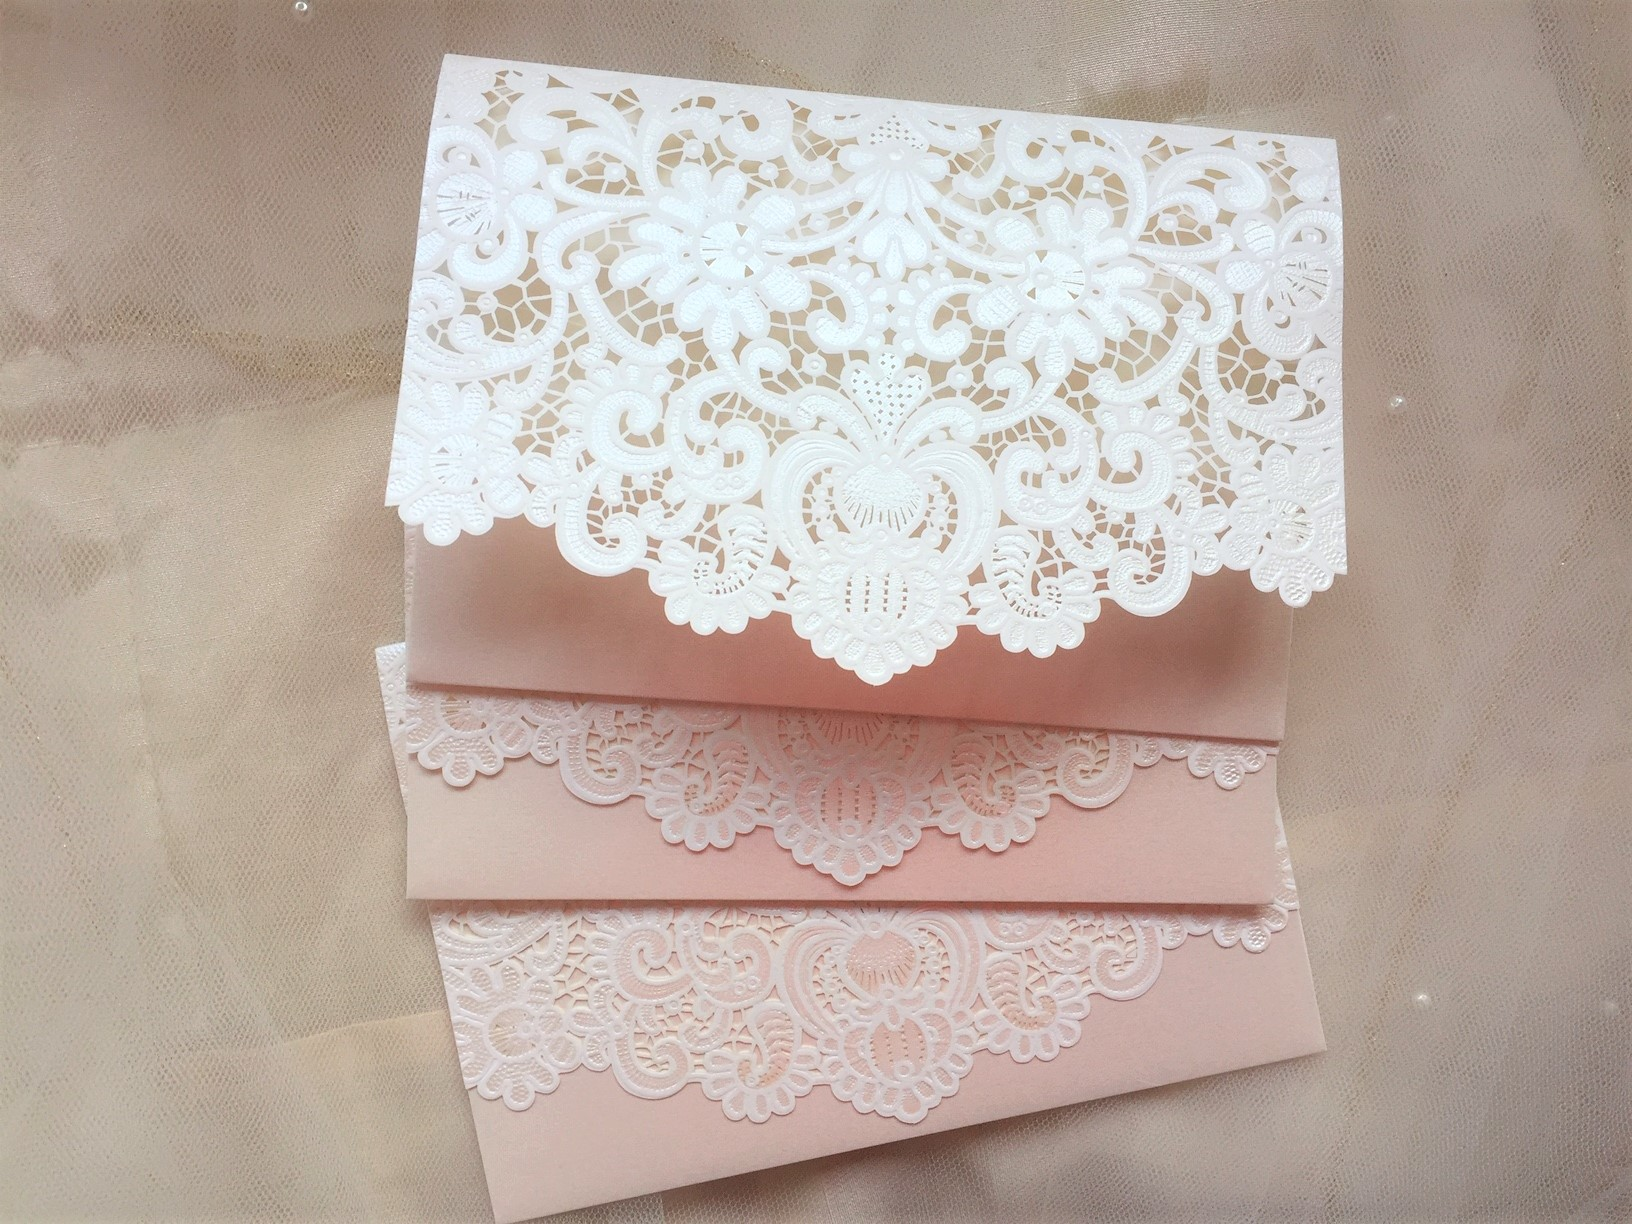 How Do You Make Your Own Wedding Invitations: DIY Laser Cut Wallets